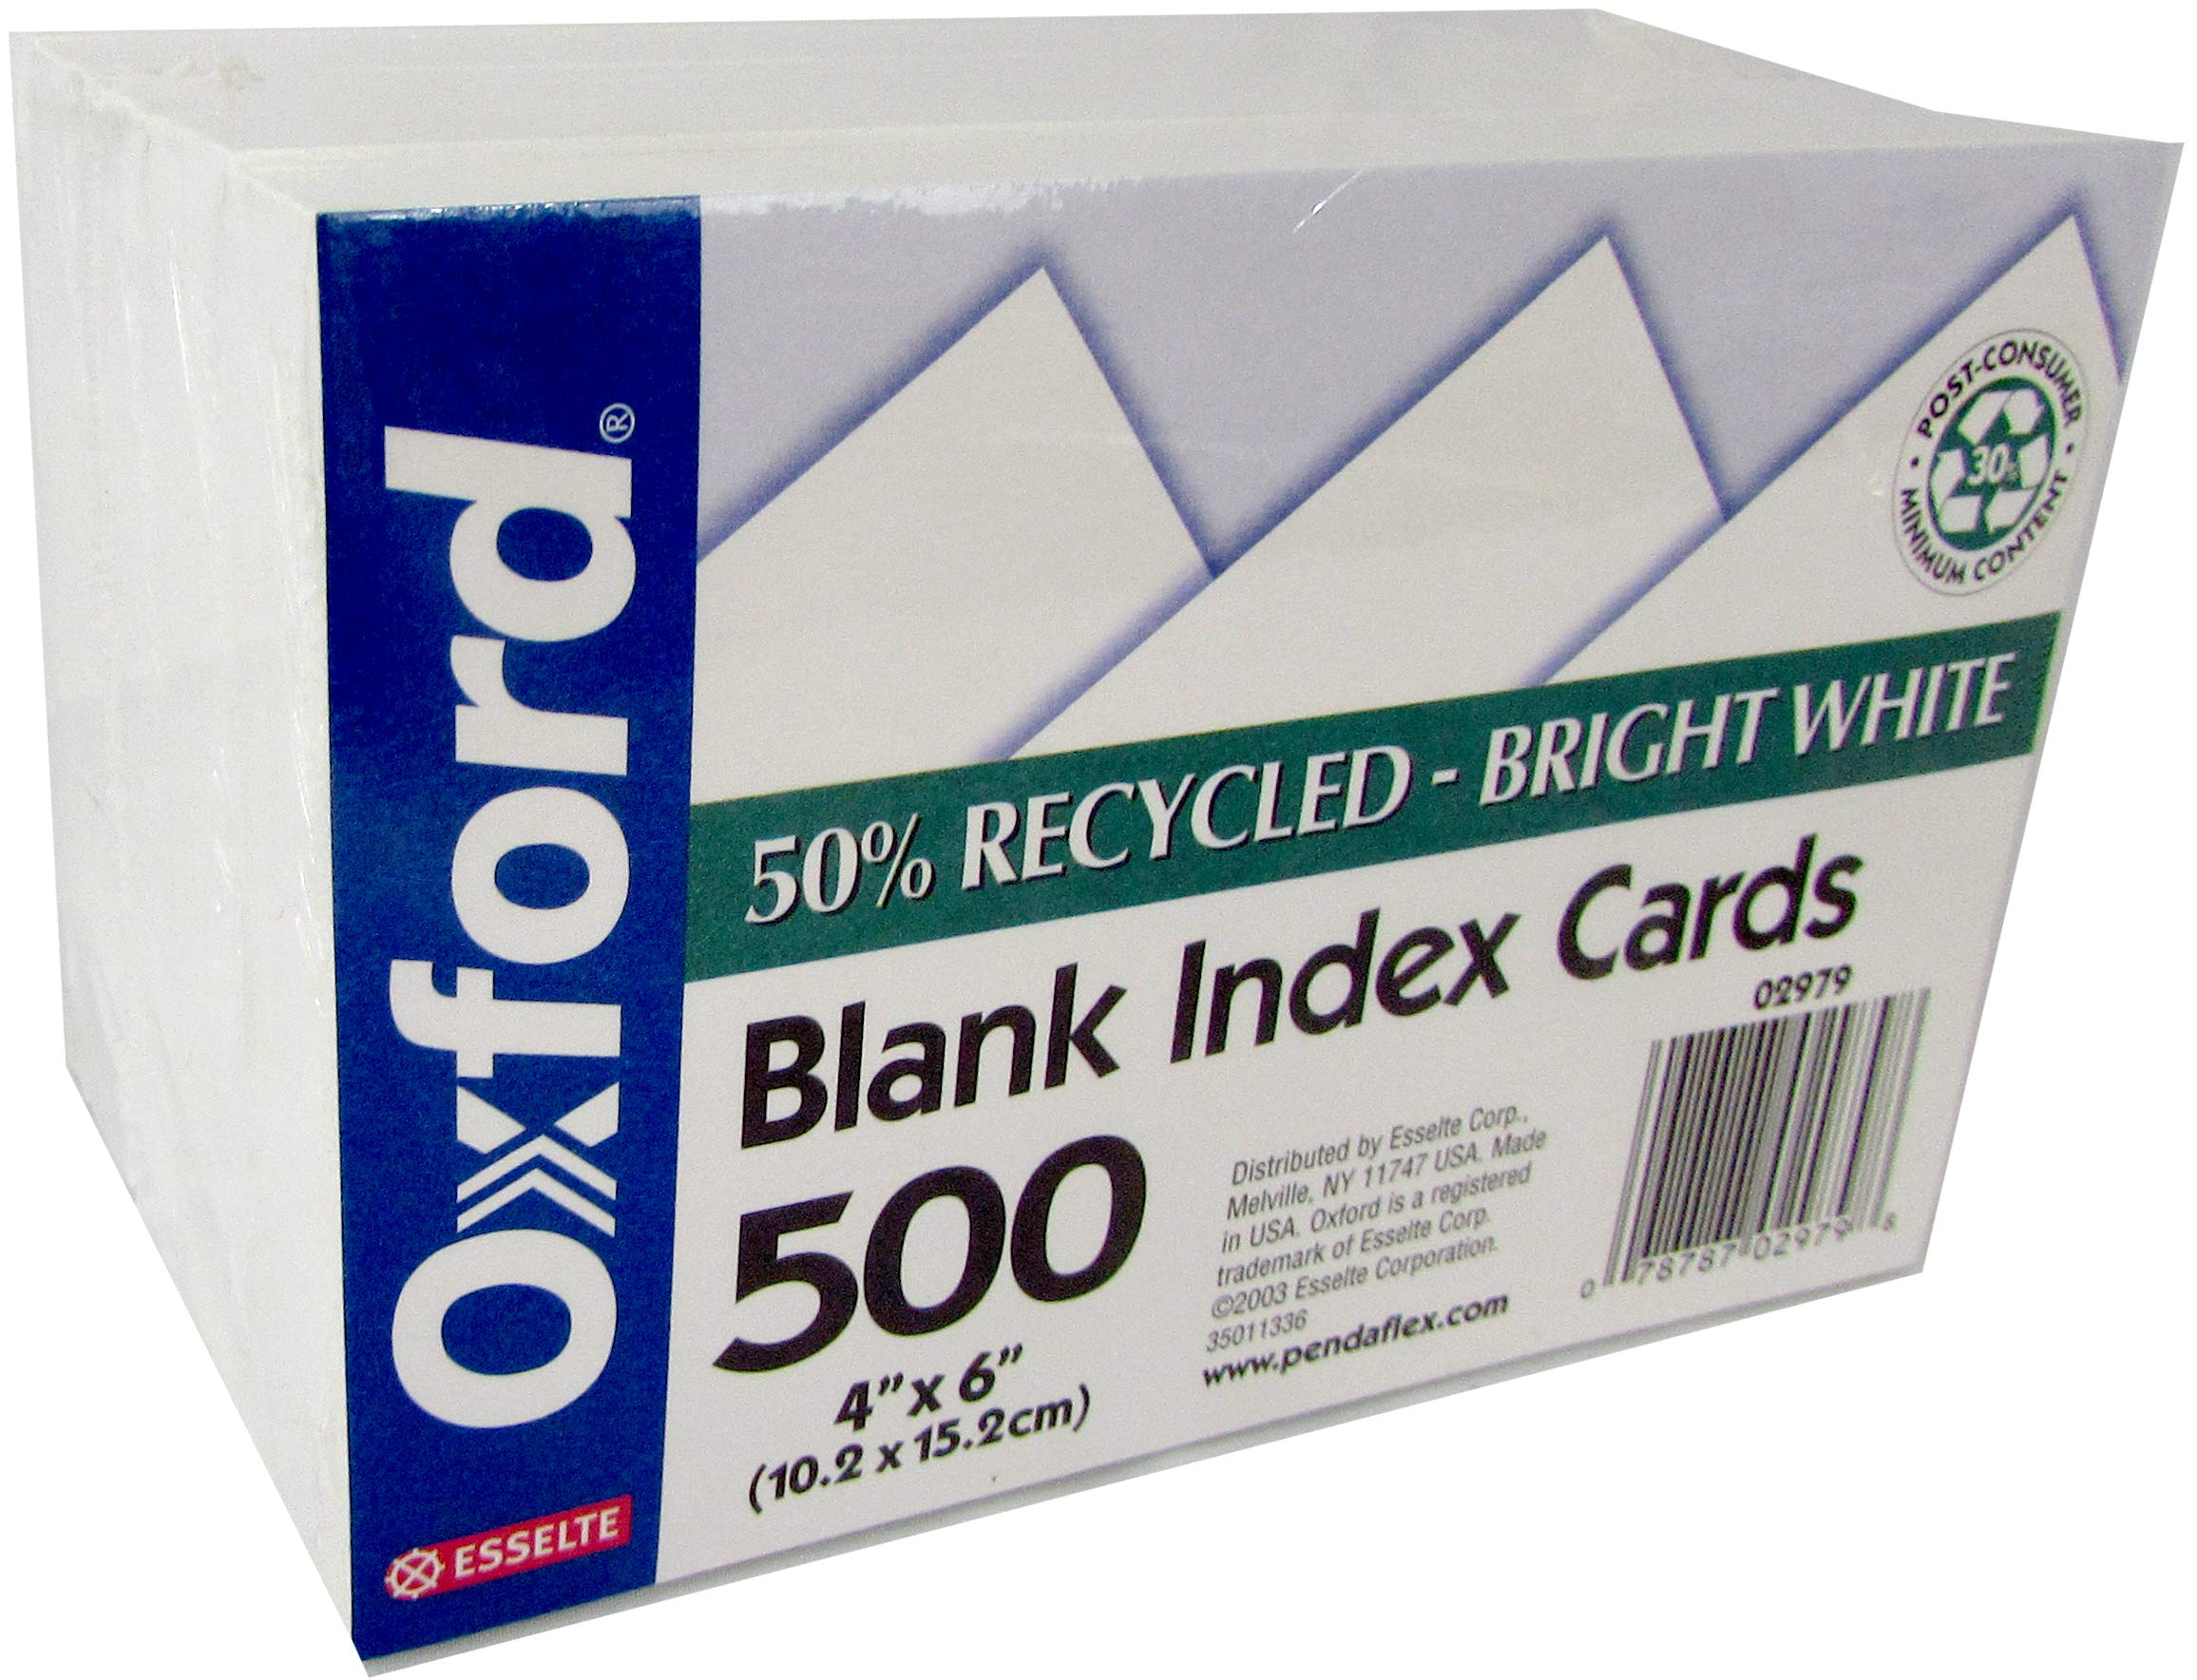 OXFORD Index cards, 4''x 6'', 500 pk, White, Unruled (each 100 wrapped individually), Case Pack of 12, Ideal for Bulk Buyers